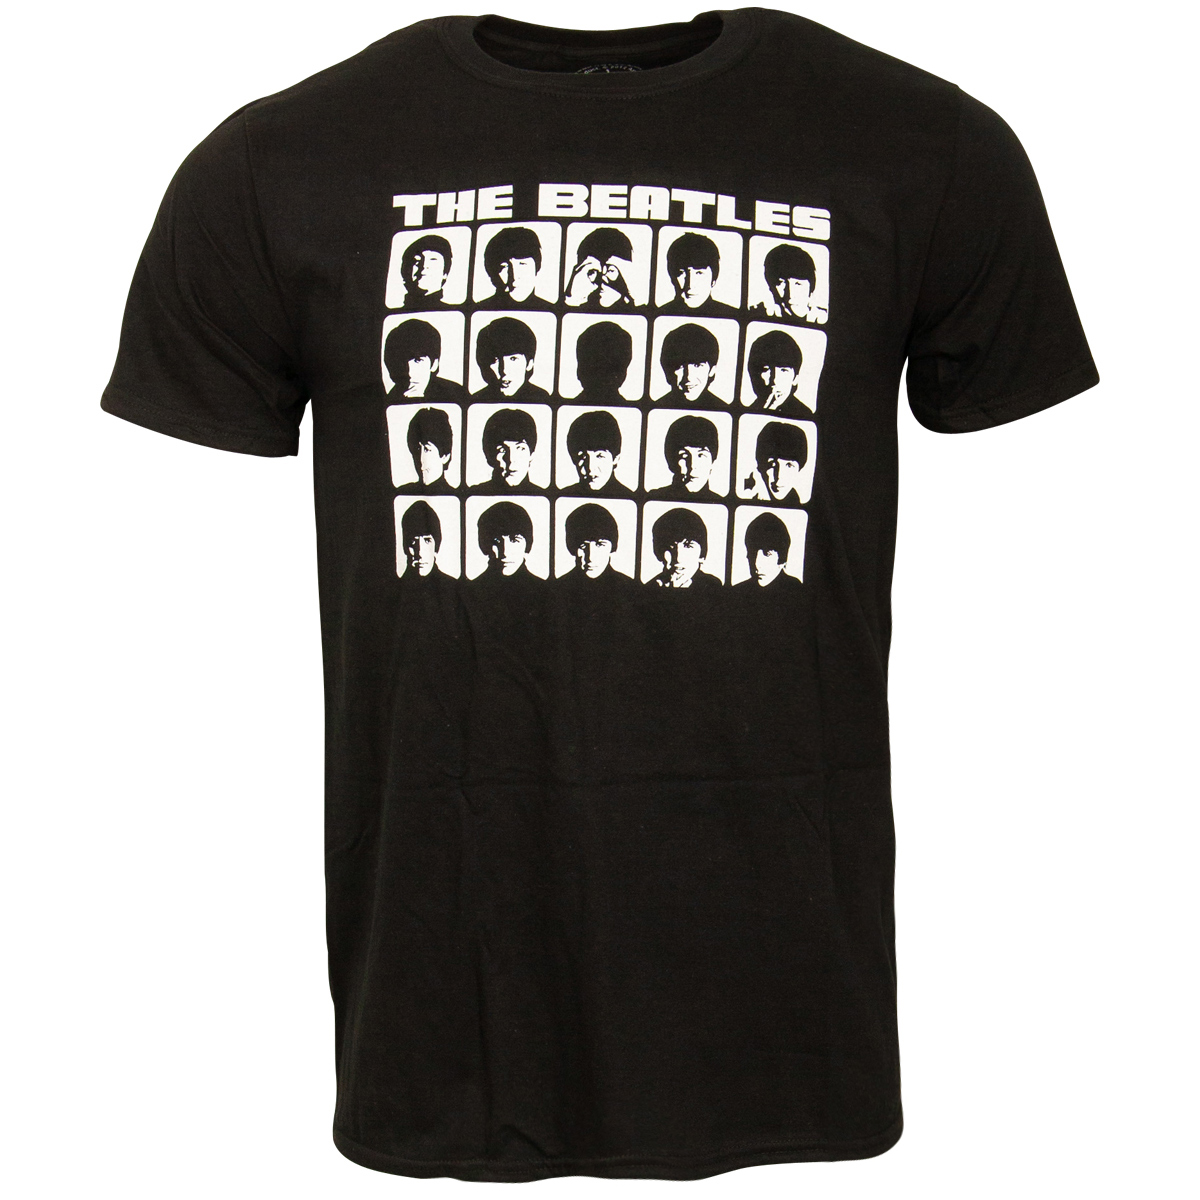 The Beatles - T-Shirt Hard Days Night Faces Mono - schwarz